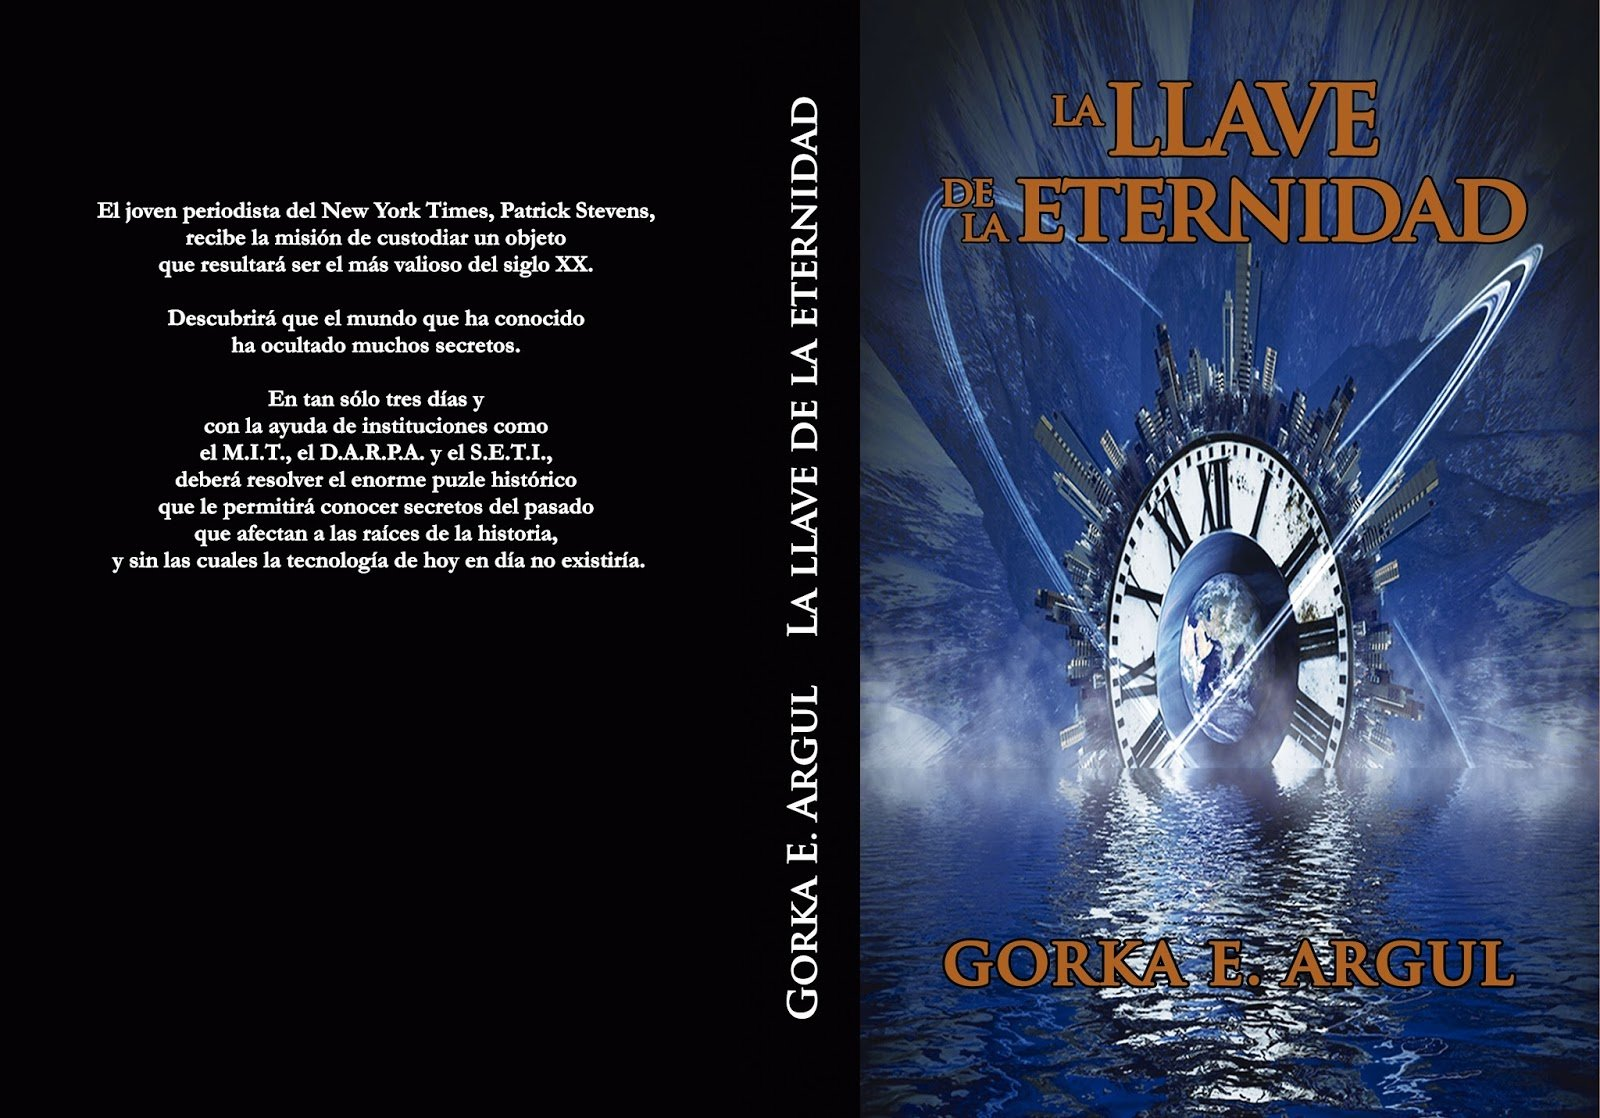 cover of la llave de la eternidad